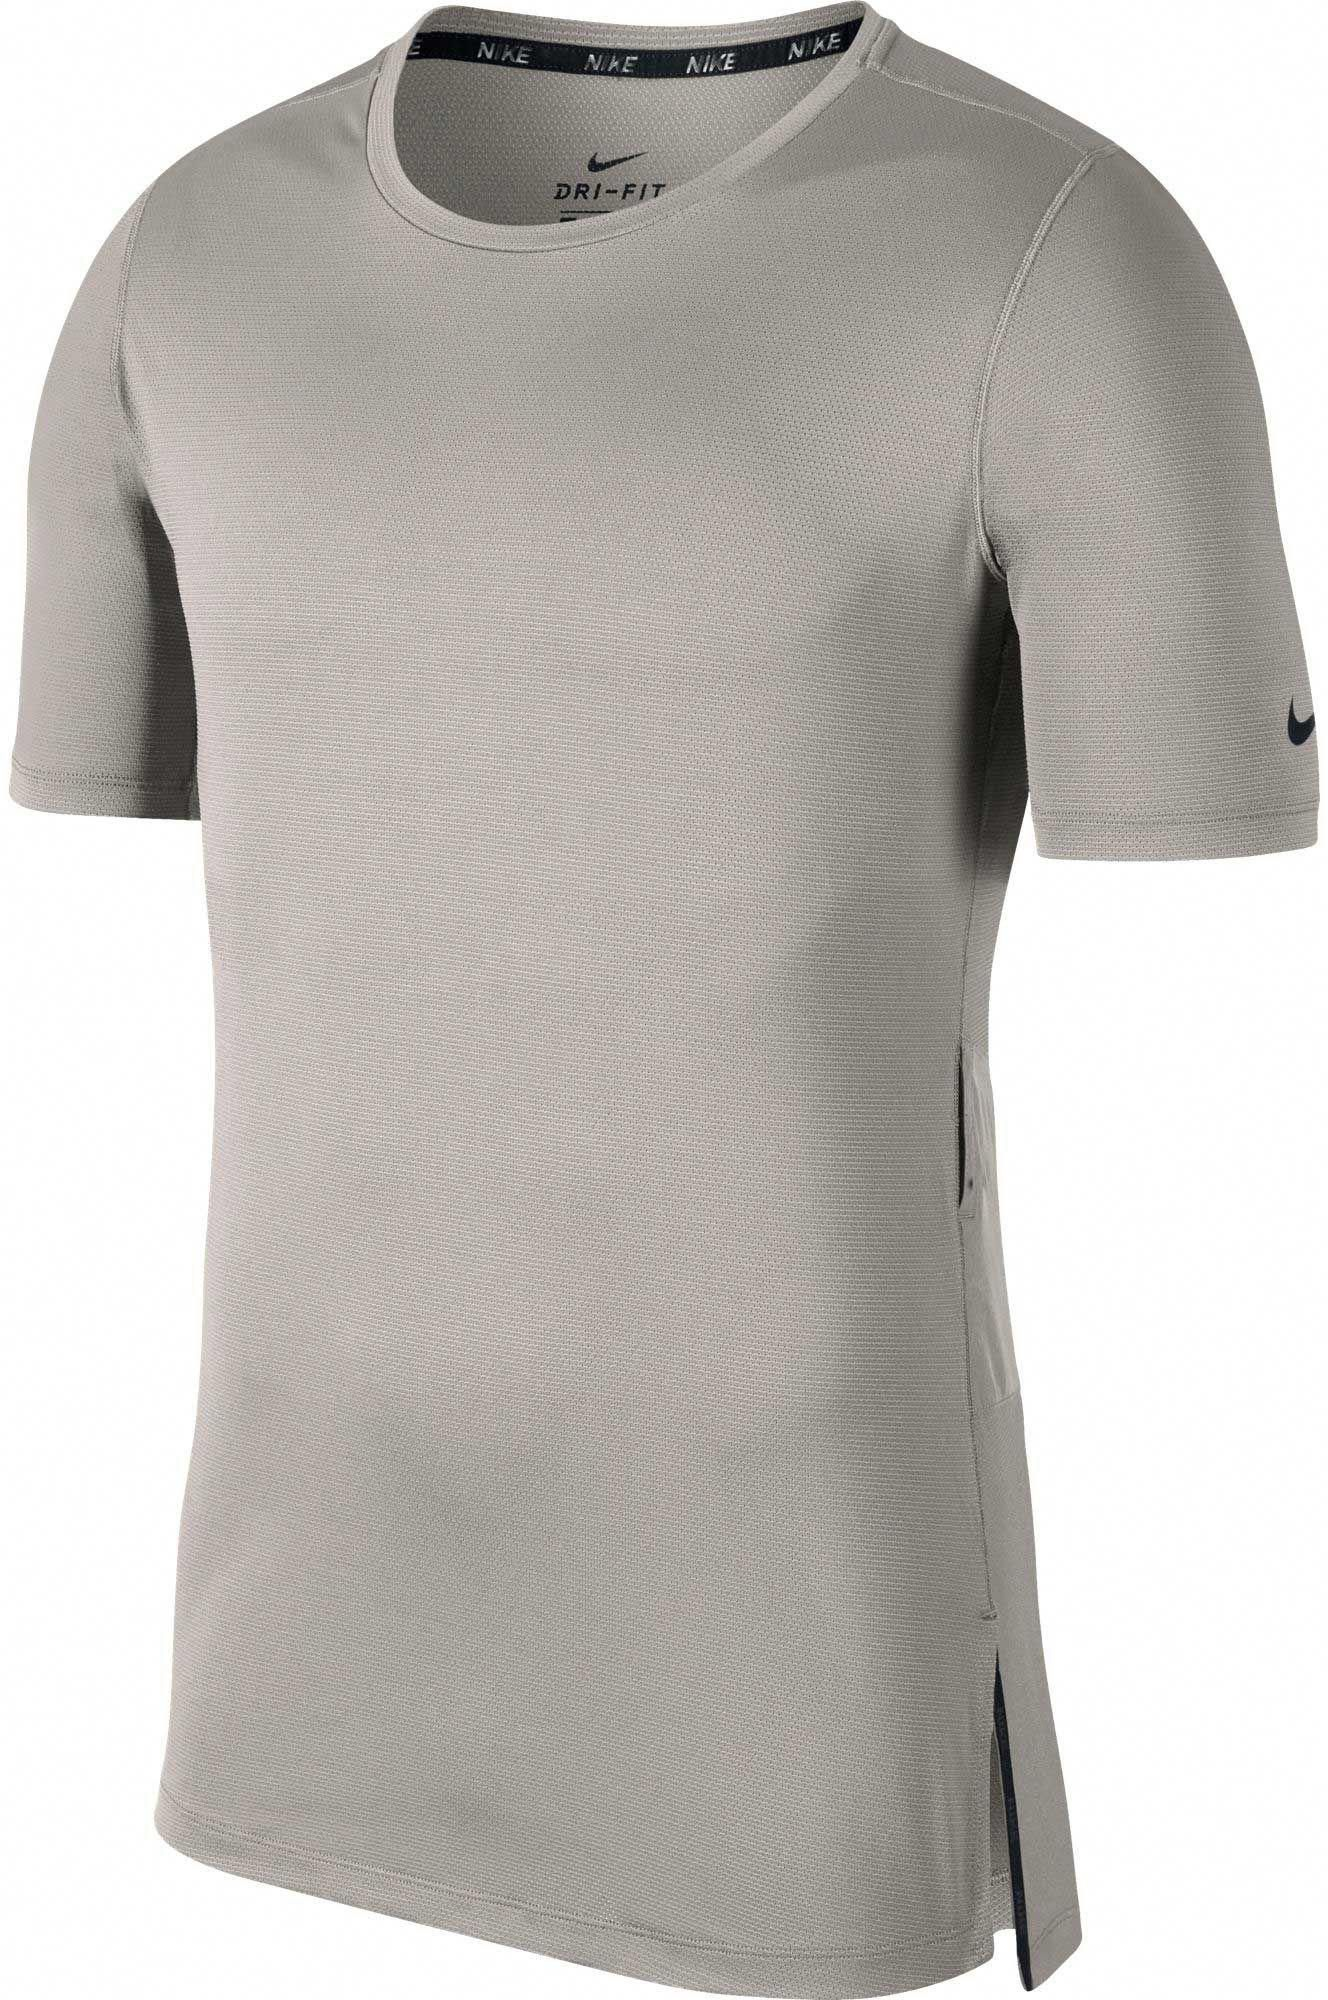 34bd136d Nike Men's Modern Utility Fitted Training T-Shirt, Size: XXL, Brown ...